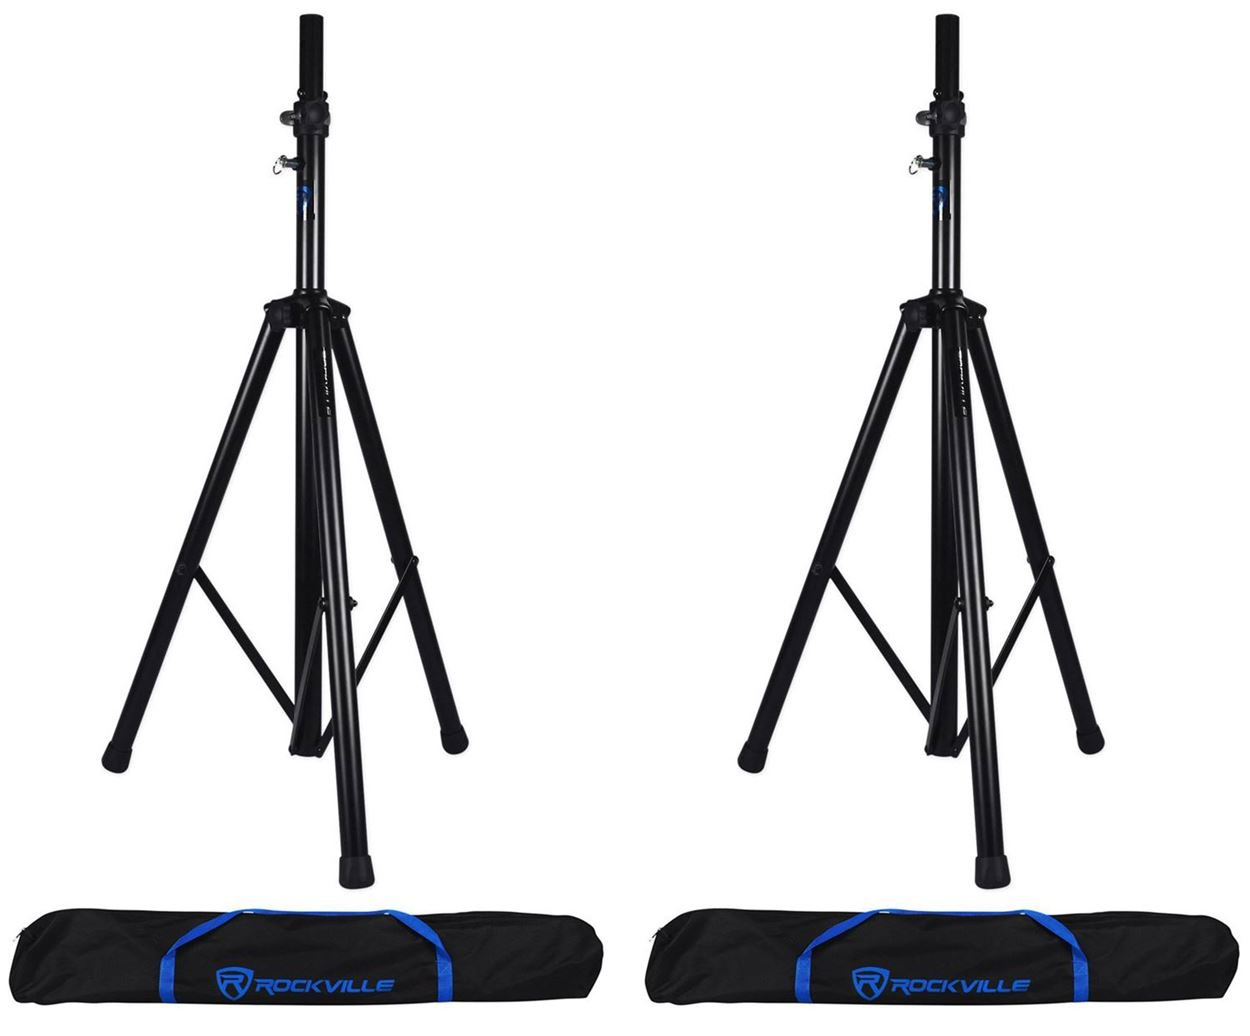 (2) Rockville RVSS4AB Tripod Speaker Stands With Hydraulic Lift-Up and Lowering Mechanism - Handles Speakers Up To 154 Lbs - Free Travel Bag Included